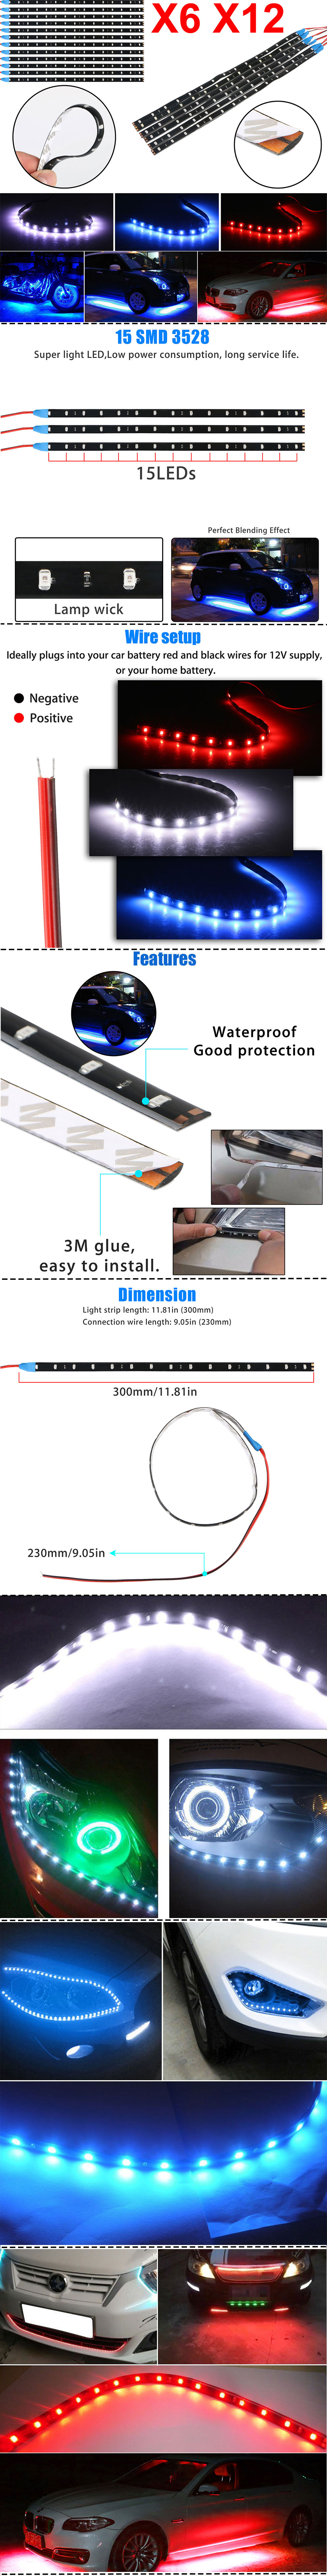 medium resolution of high quality led strip lights for home or automotive use comes in short lengths for ideal customization without the need to cut or sever